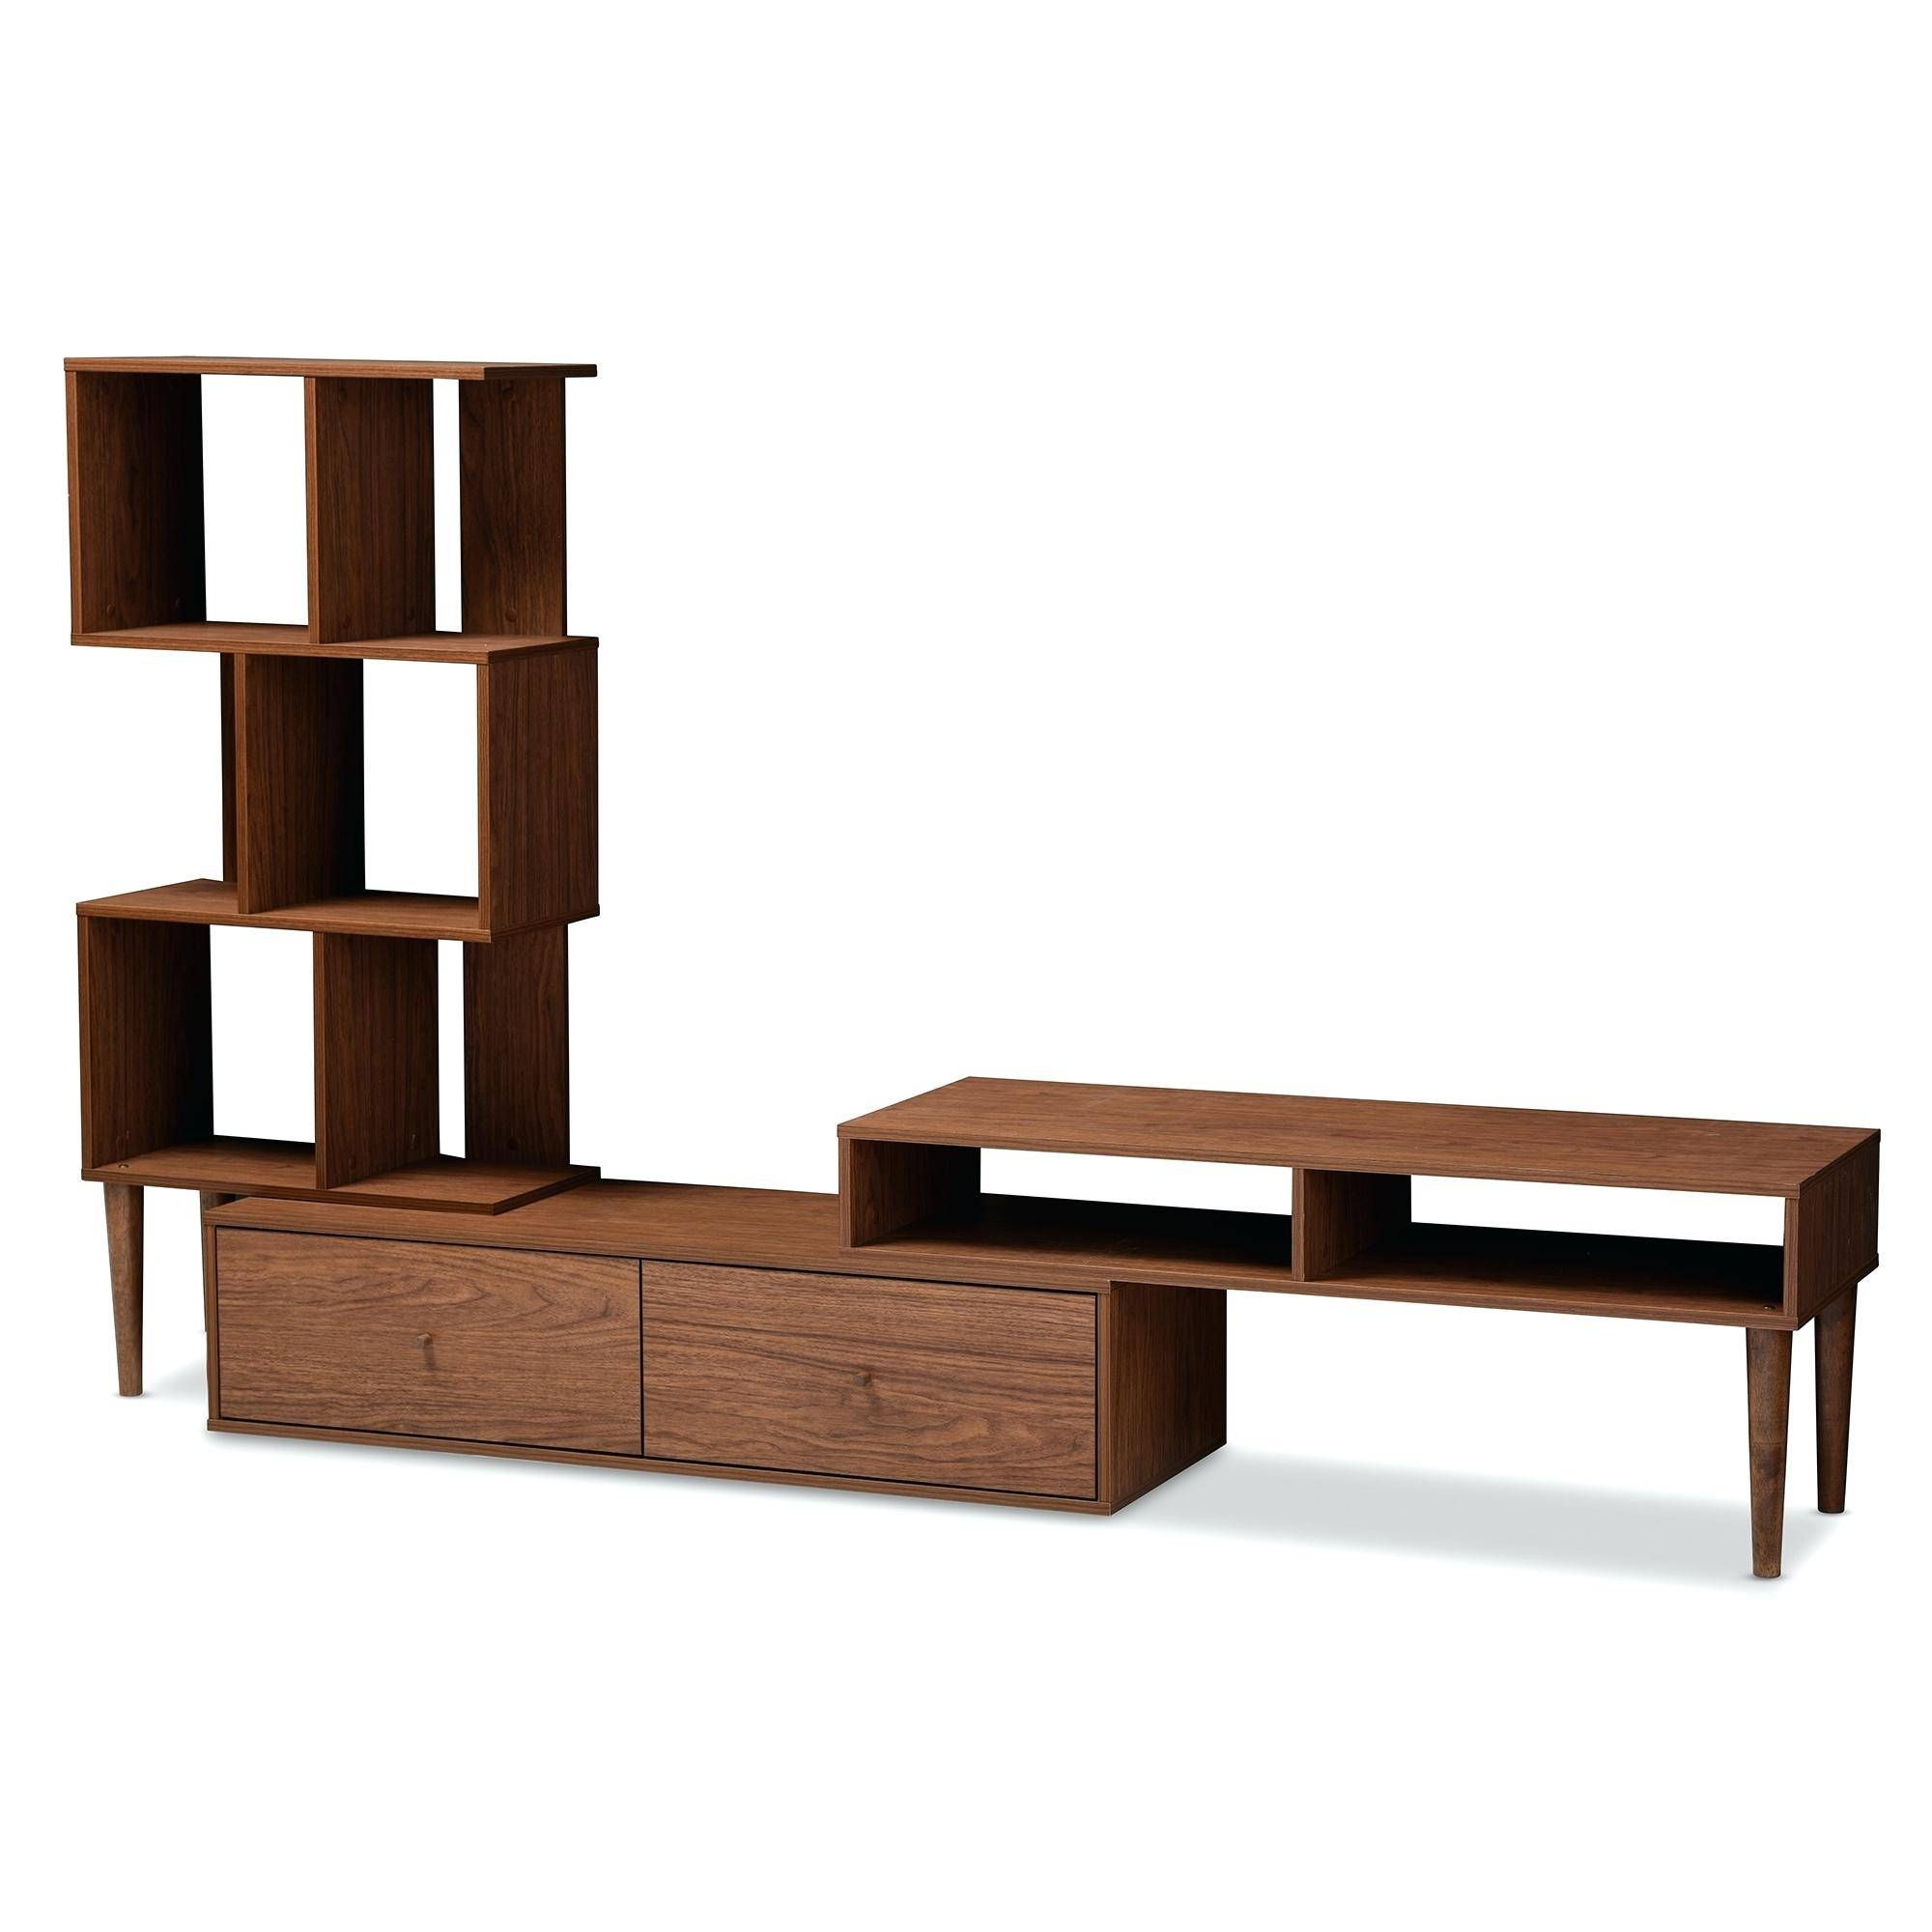 Tv Stand : 70 Serano S105Bg13 Tv Stand Cool Serano S105Bg13 Tv in Retro Corner Tv Stands (Image 6 of 15)